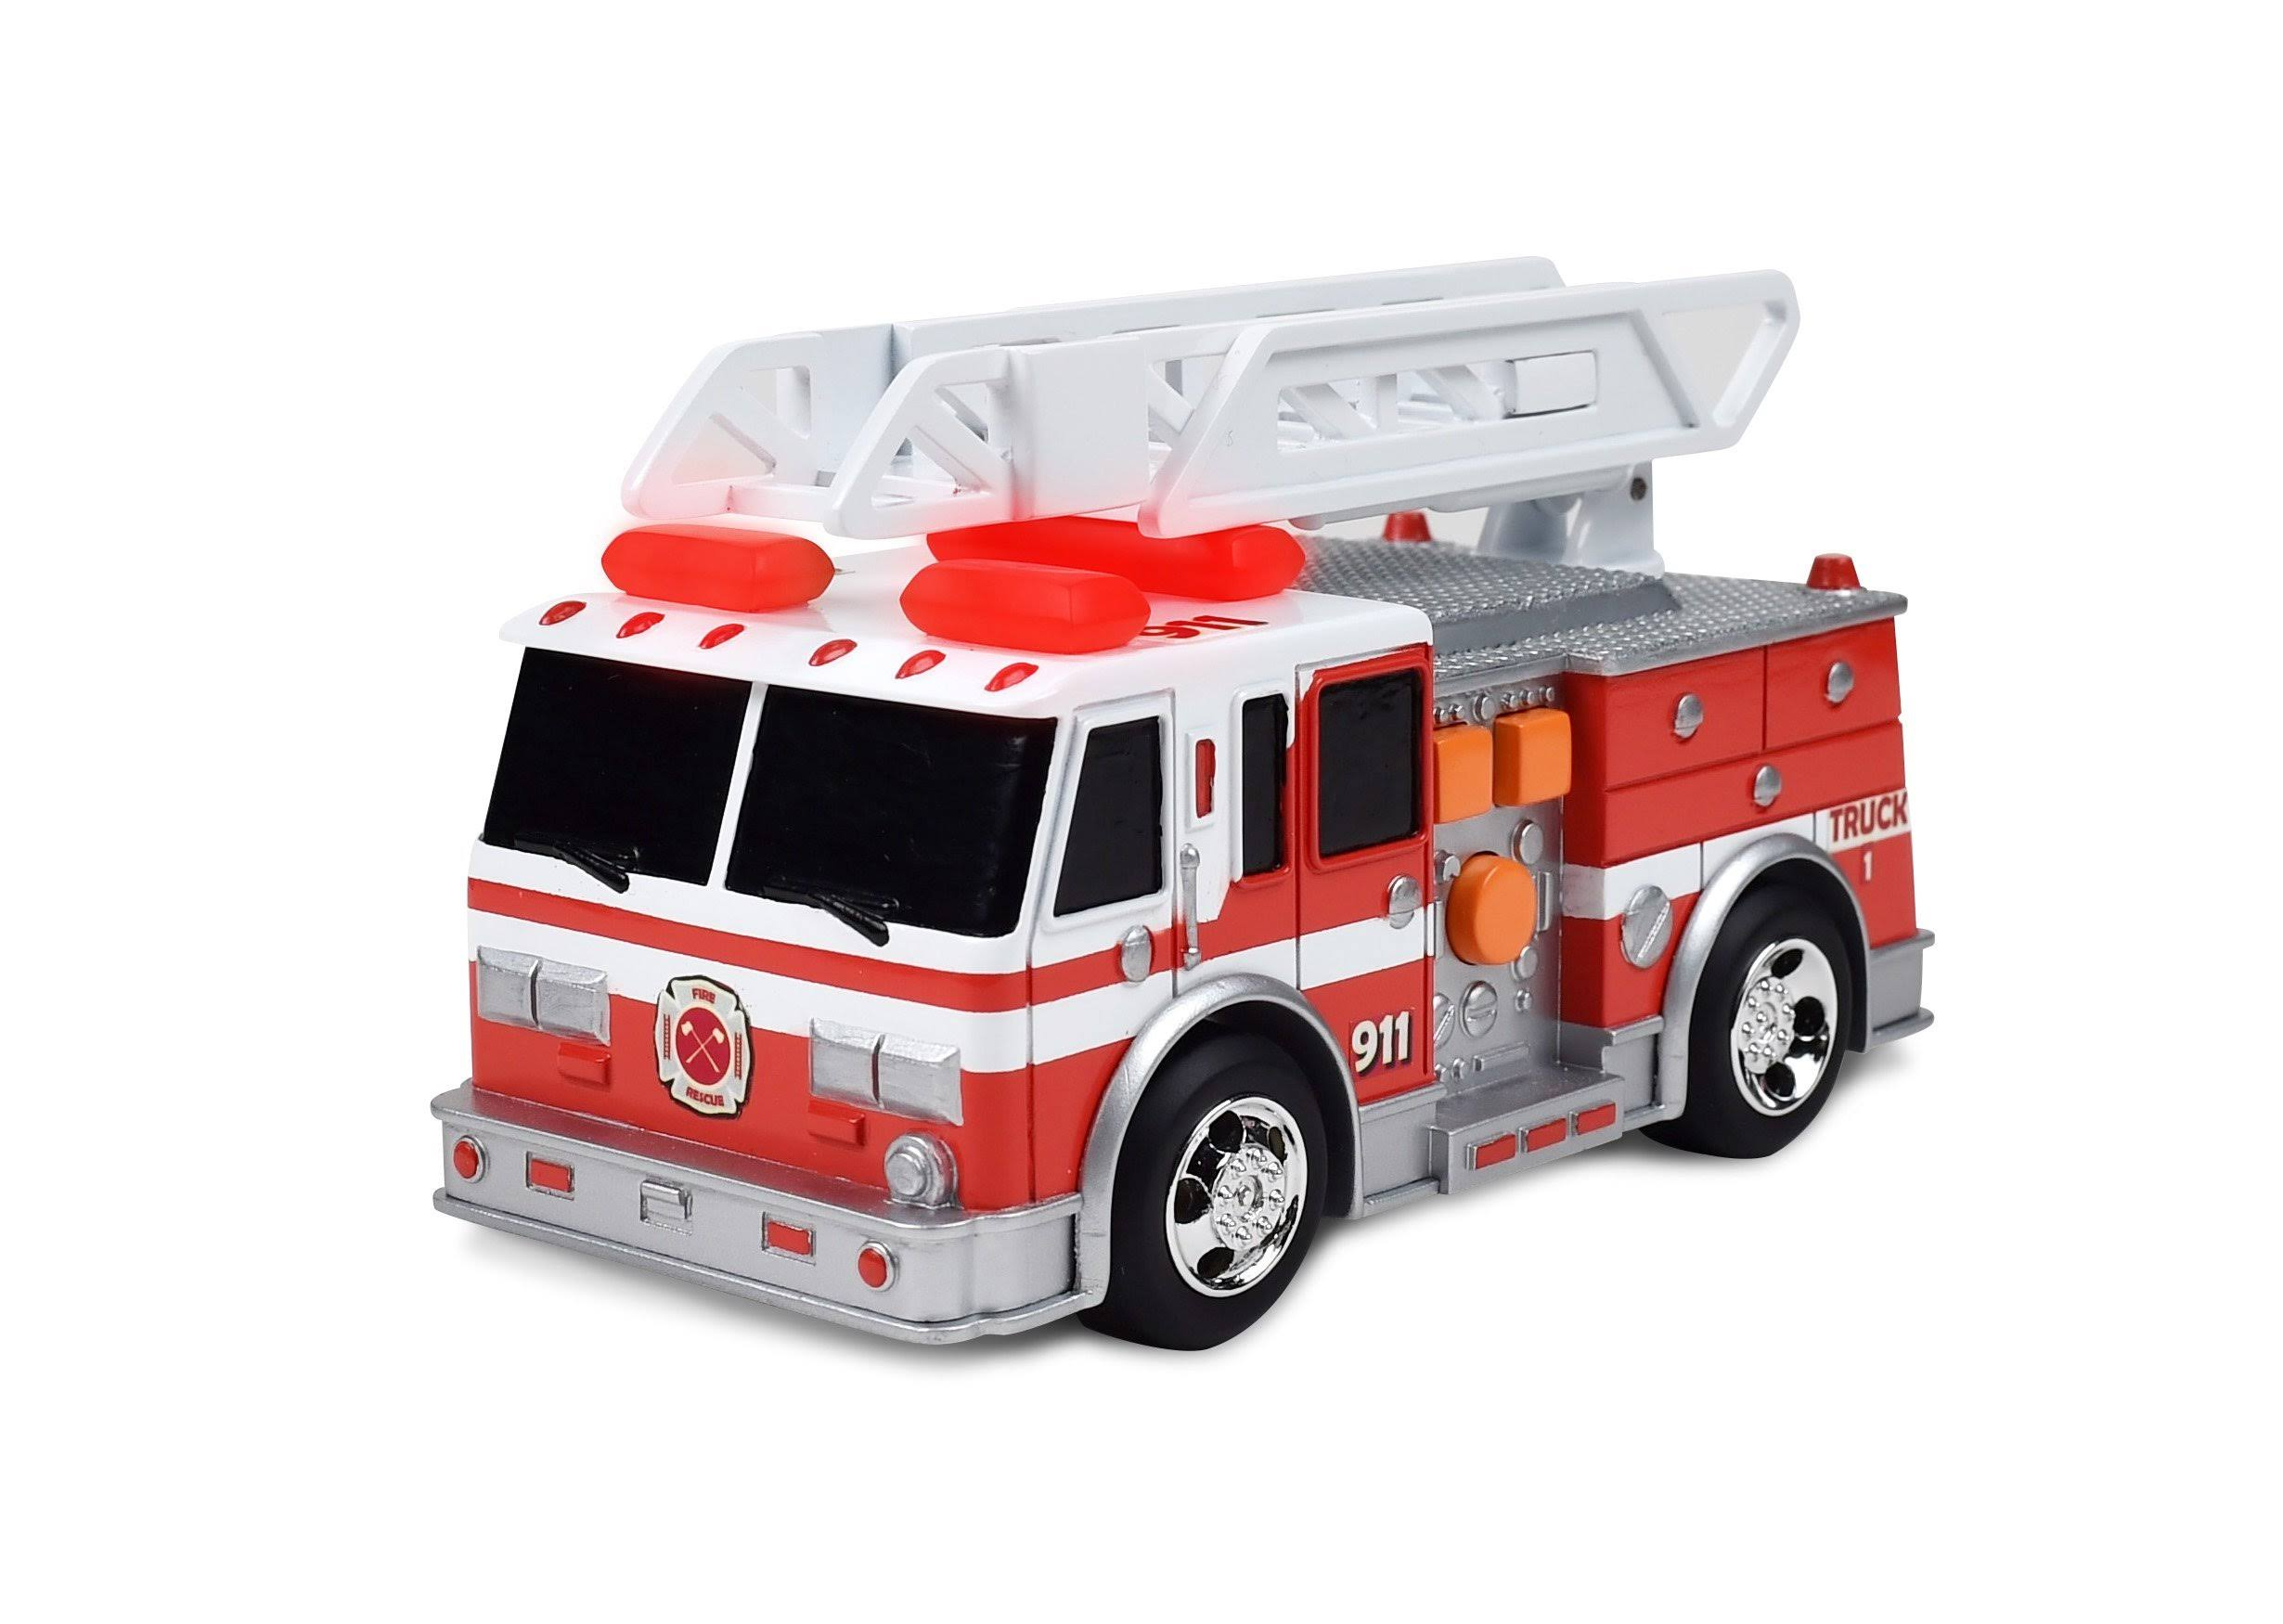 Maxx Action Light & Sound Rescue Vehicles Fire Truck Toy